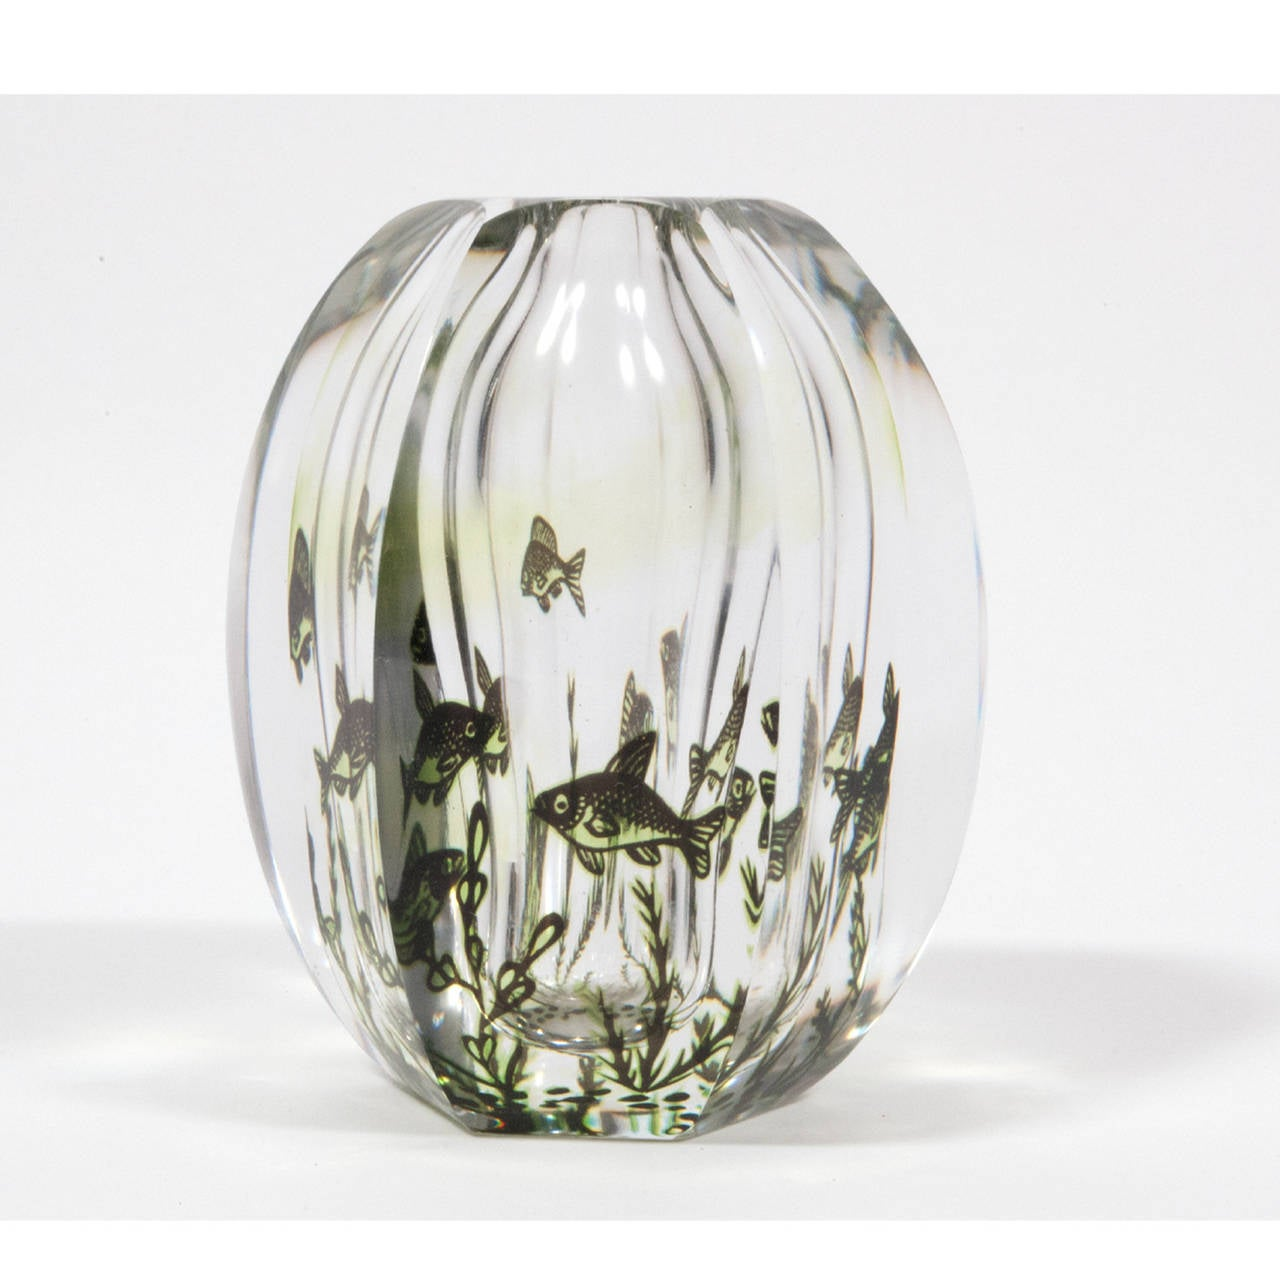 Six Sided Fish Graal Art Glass Vase by Edvin Ohrstrom 2